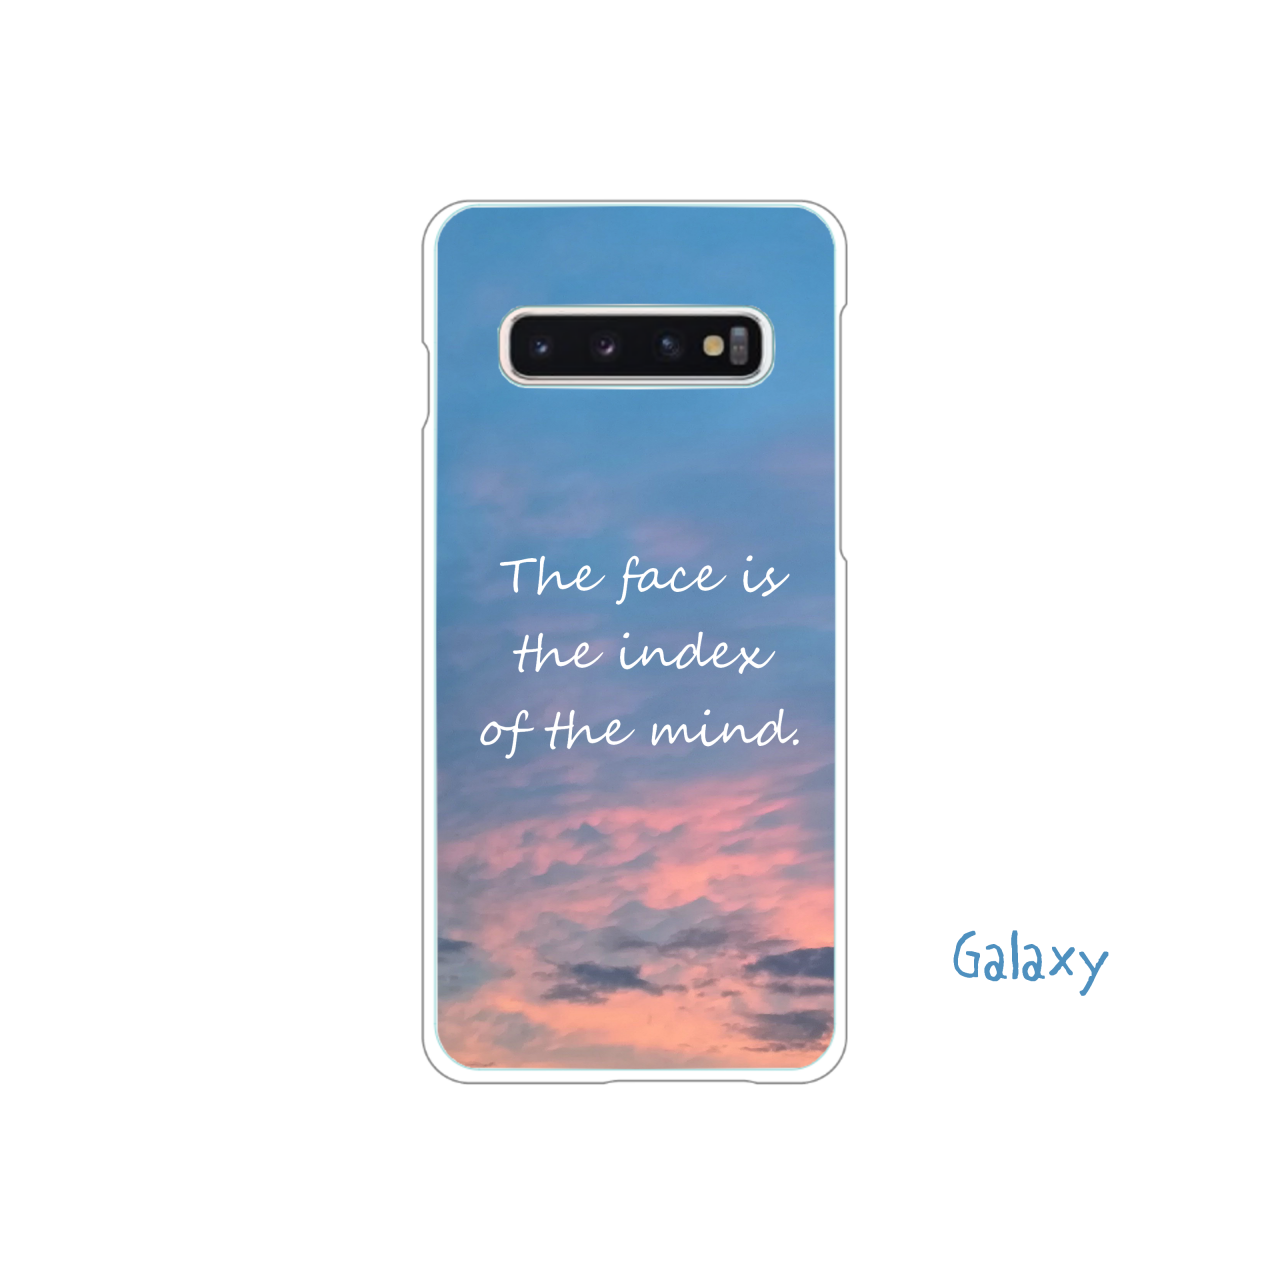 The face is the index of the mind.     (Galaxy) Galaxy S10+ (SC-04L/SCV42)